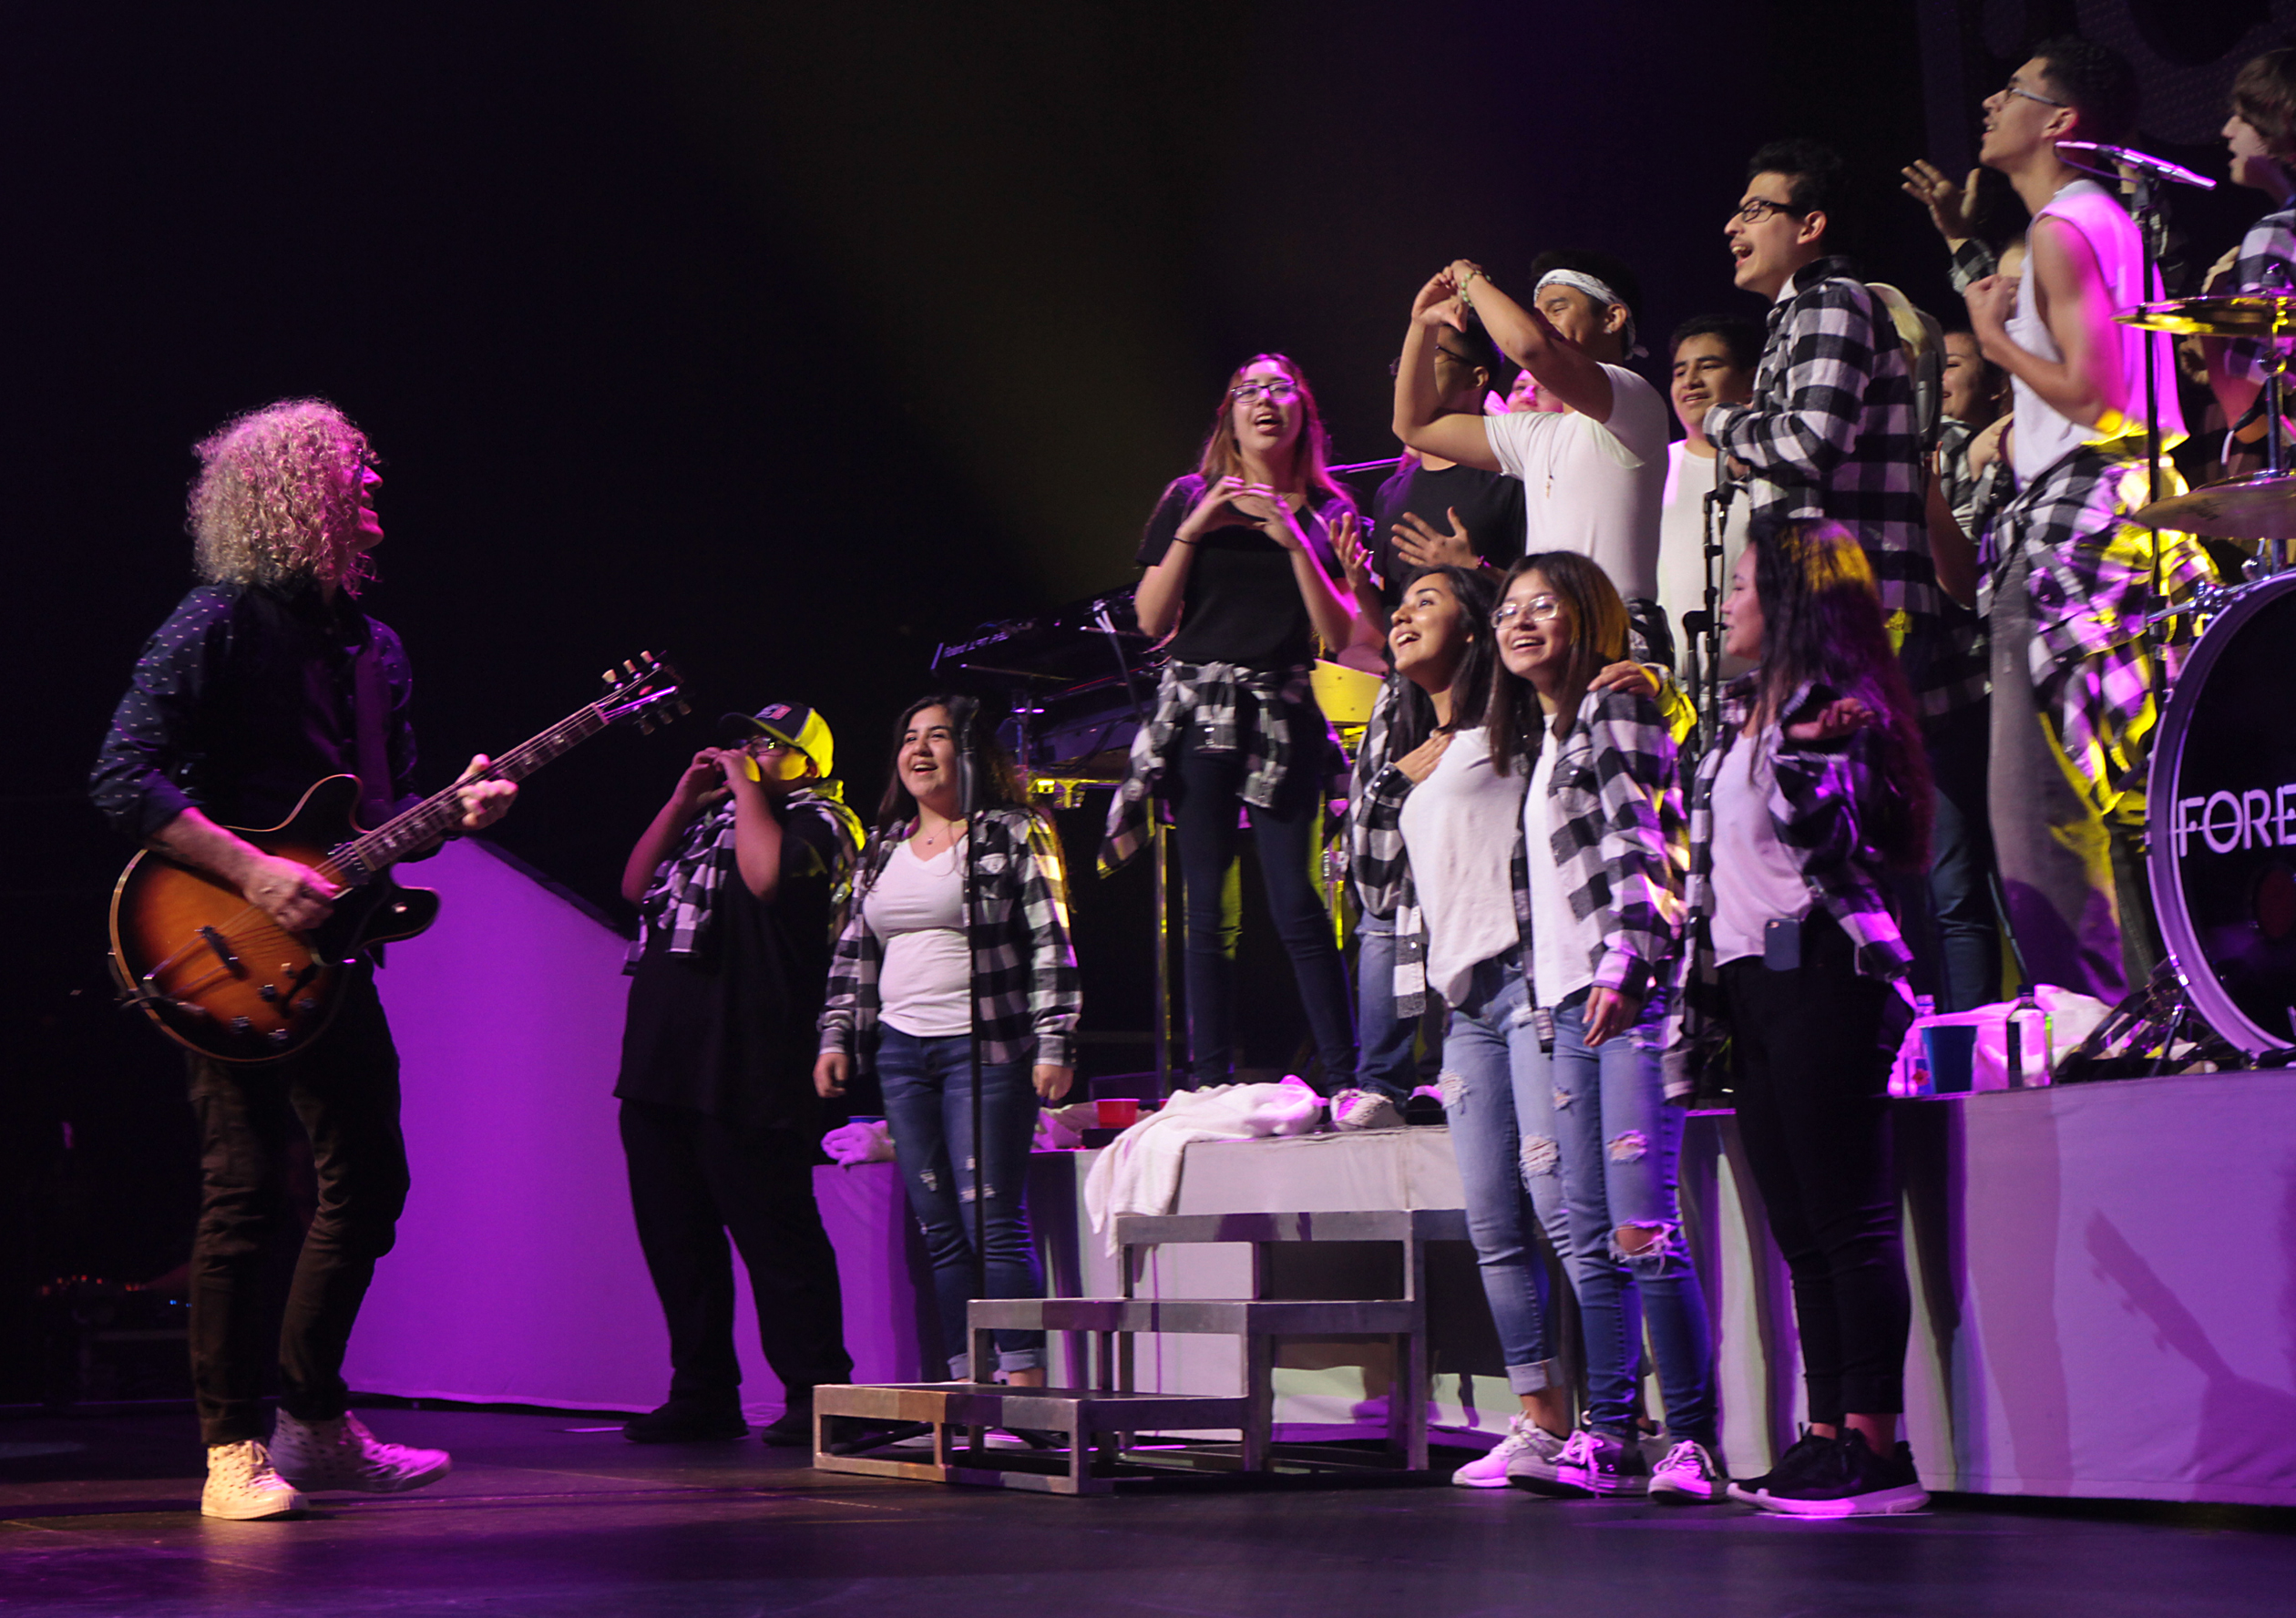 Twenty-five students from Connally High School were selected to perform with Foreigner Feb. 25, 2018 (PfISD Photo)